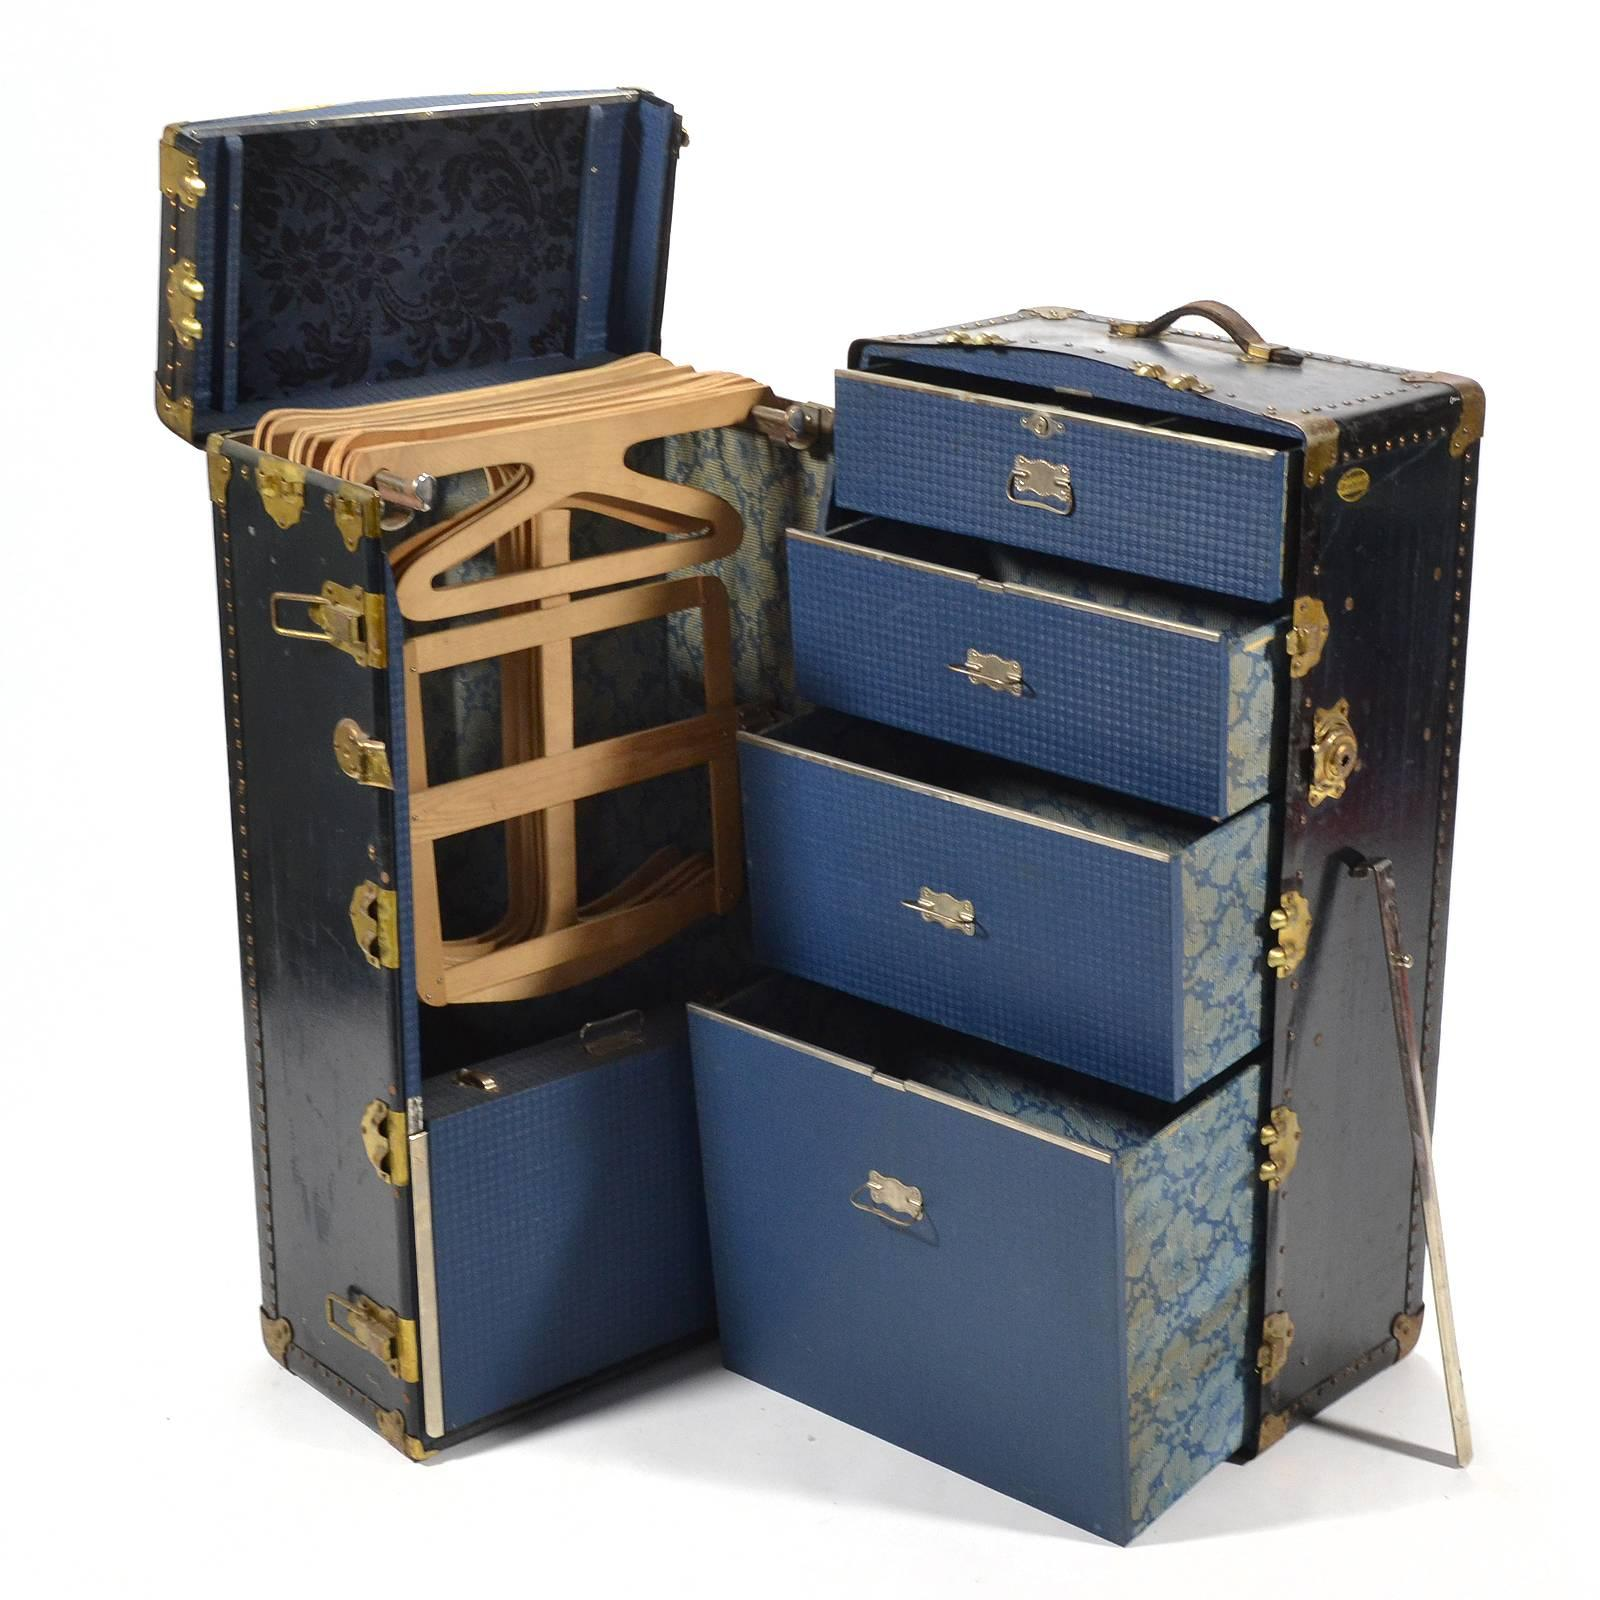 especially main suitcase with popsugar travel hours deserve prime drawers your items a can tedious planning tips packing estate out from figuring living smart in take which require multimonth trips real company